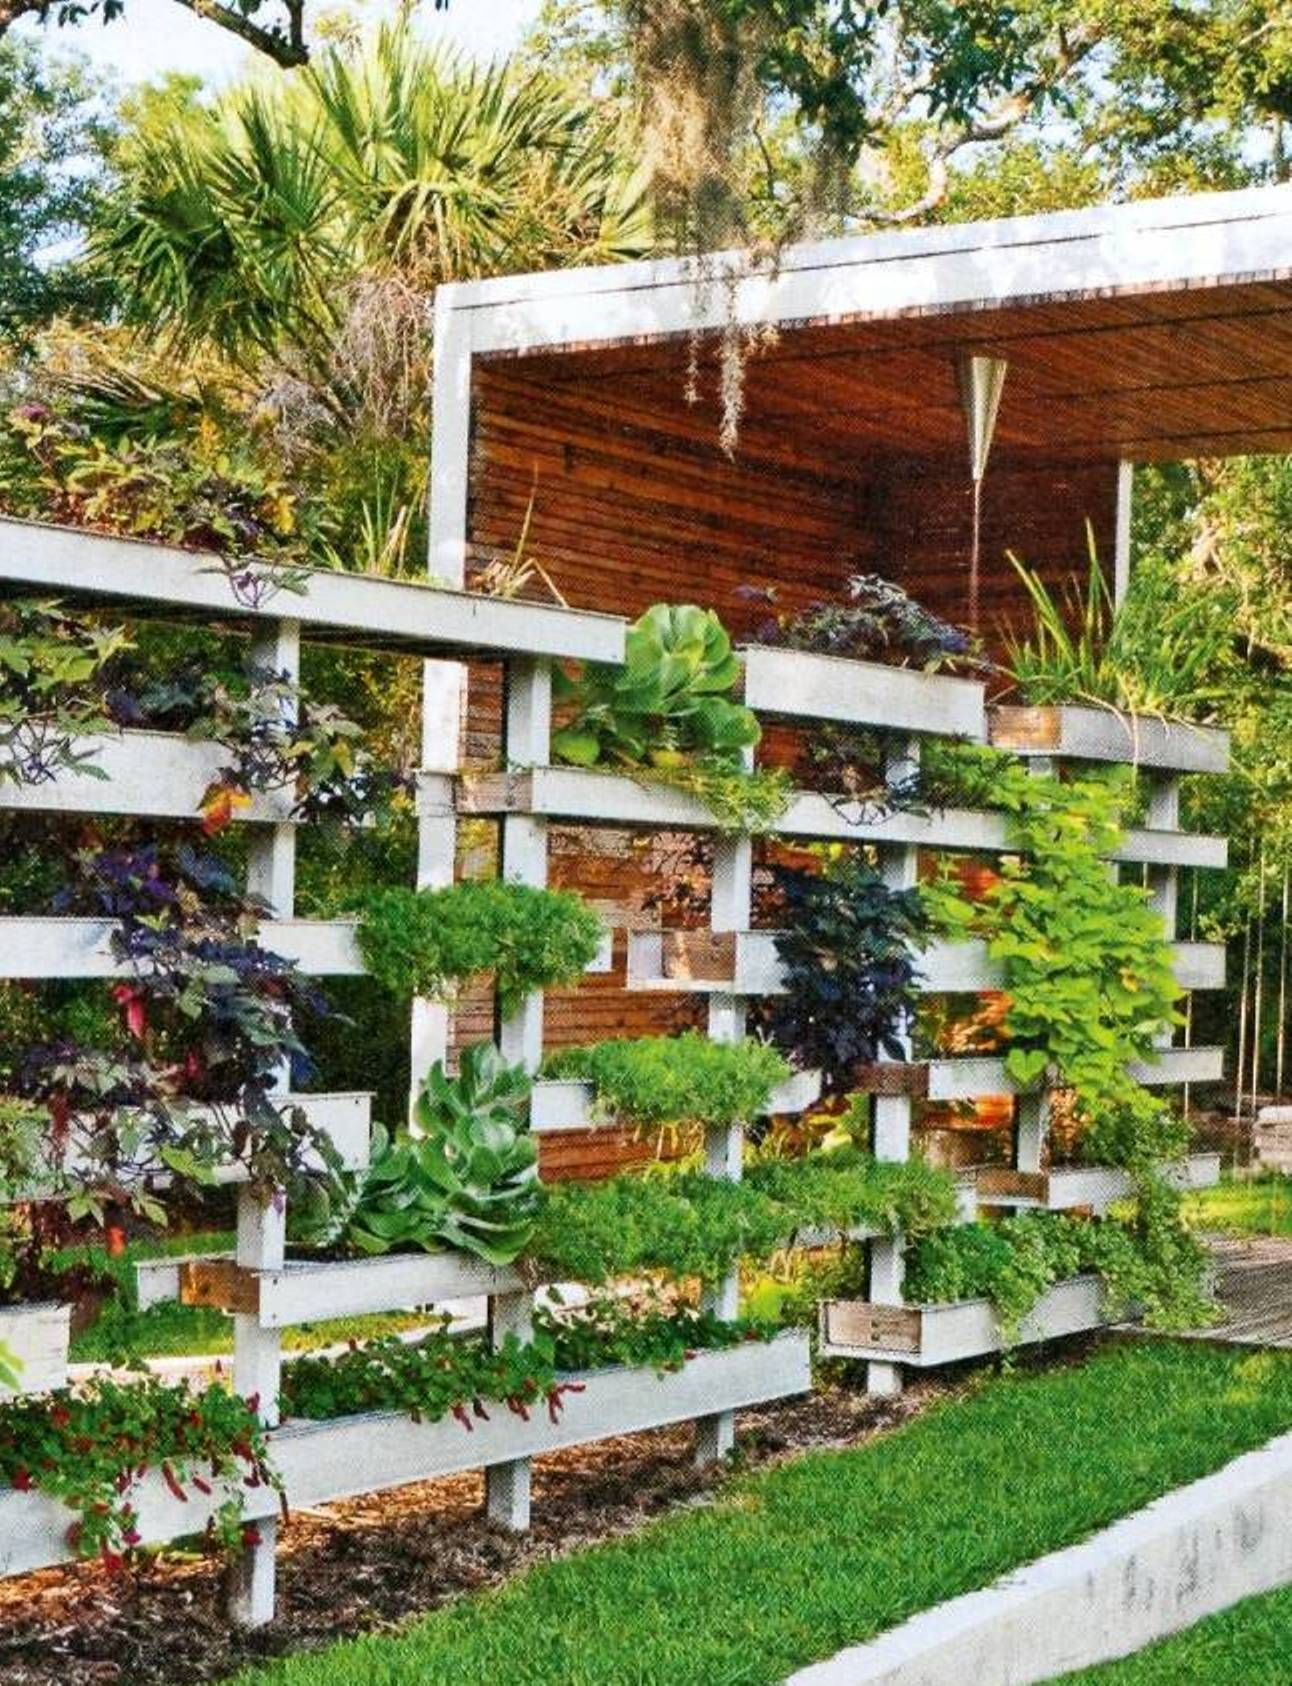 Garden Marvelous Amazing Small Space Garden Small Space Garden Ideas Gallery  Small Garden Ideas How To Create Lovely Home Gardening In Your Small Yard Part 70